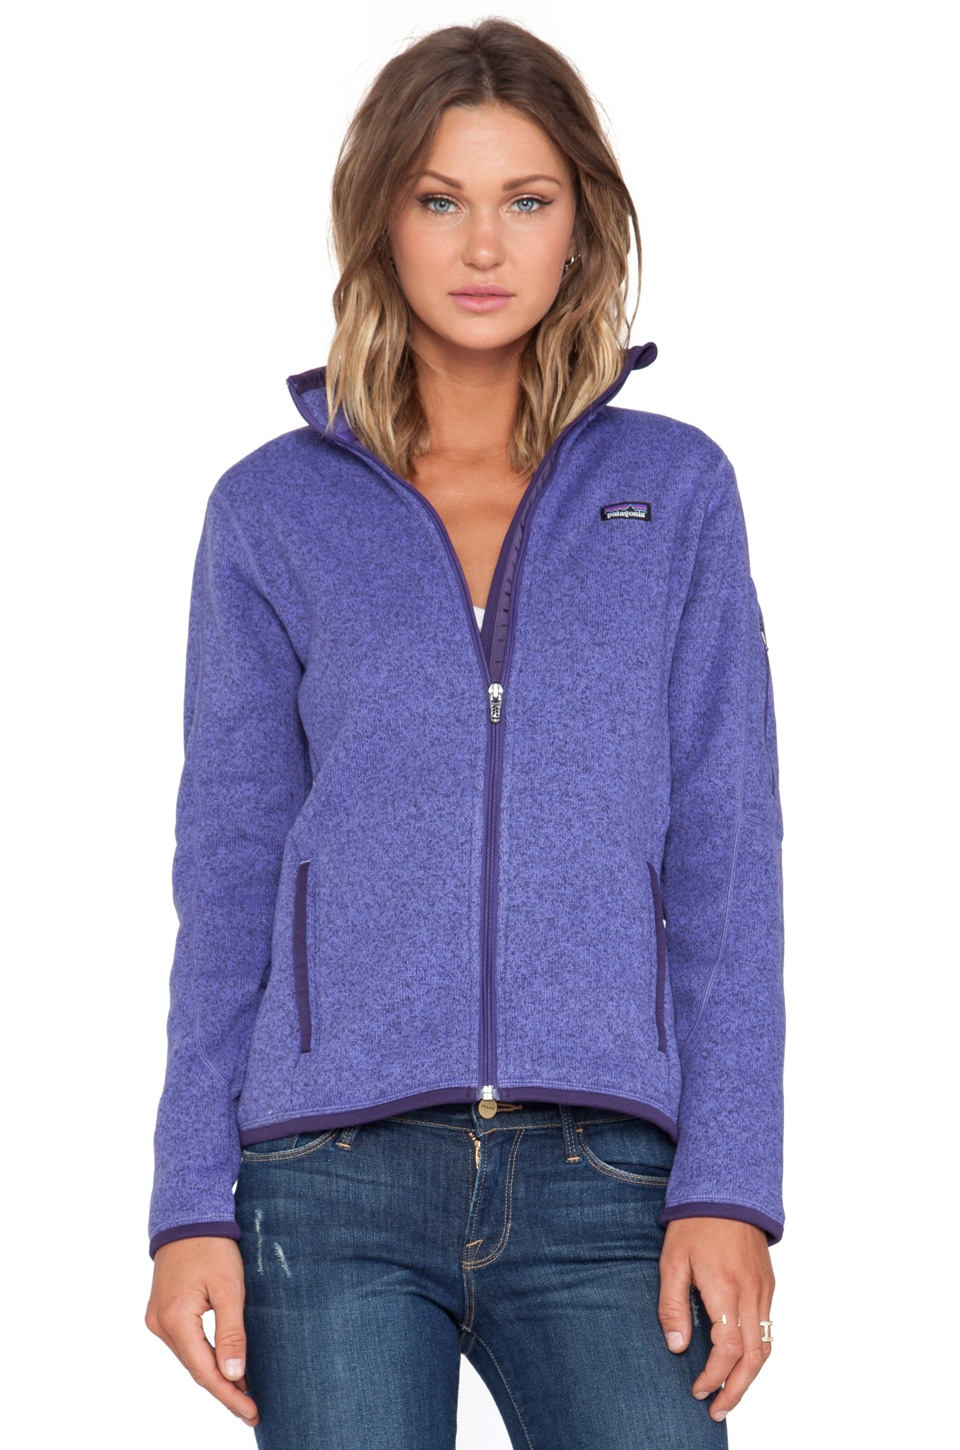 Patagonia Better Sweater Jacket in Violetti